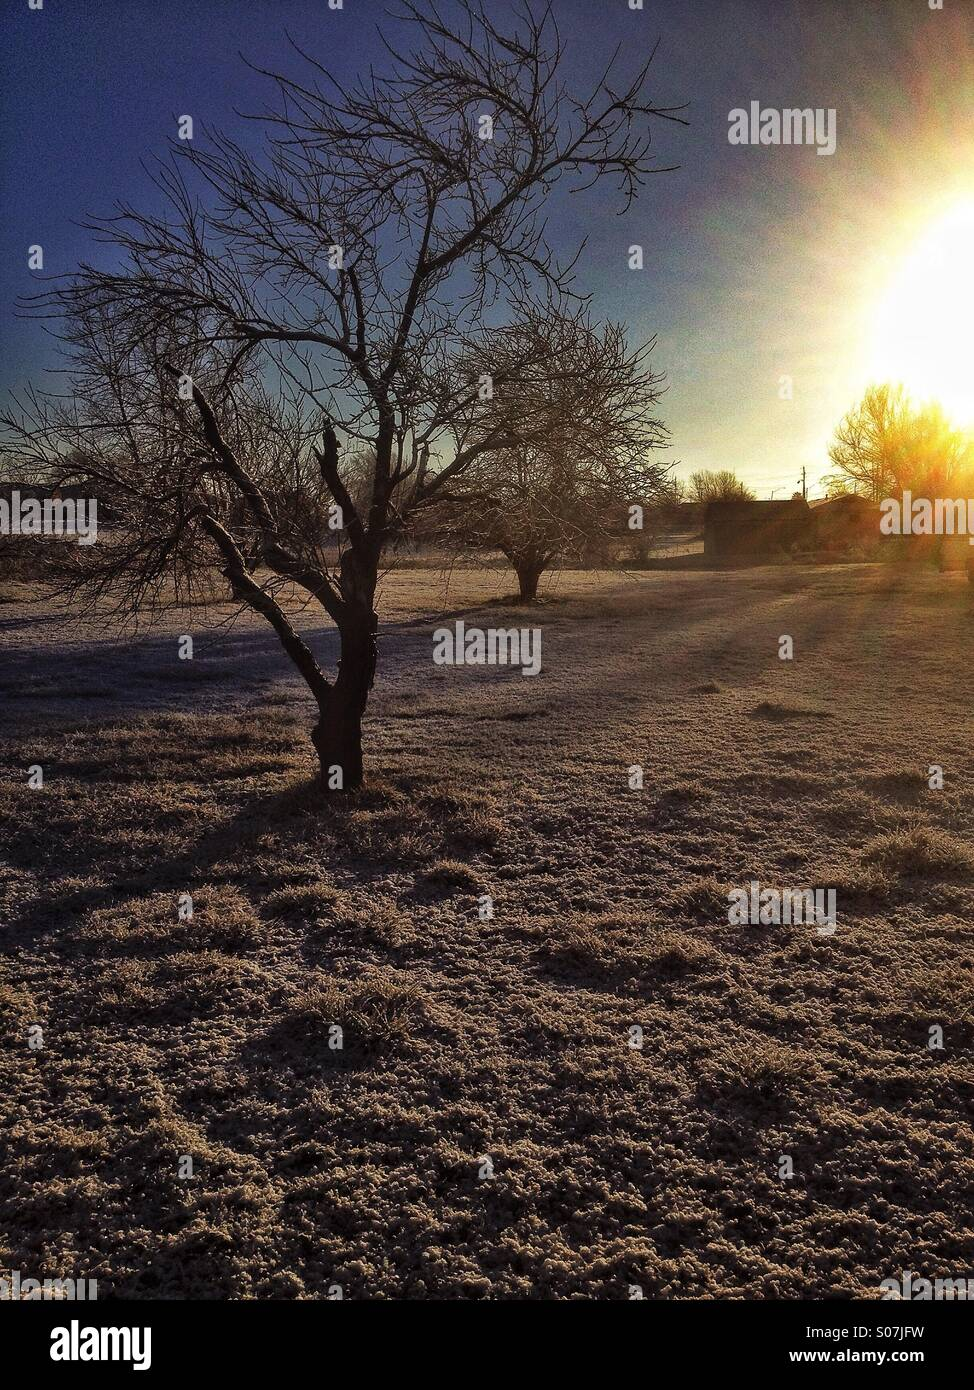 Frosty morning! Darker dramatic side lighting of textures on tree and grass. HDR - Stock Image